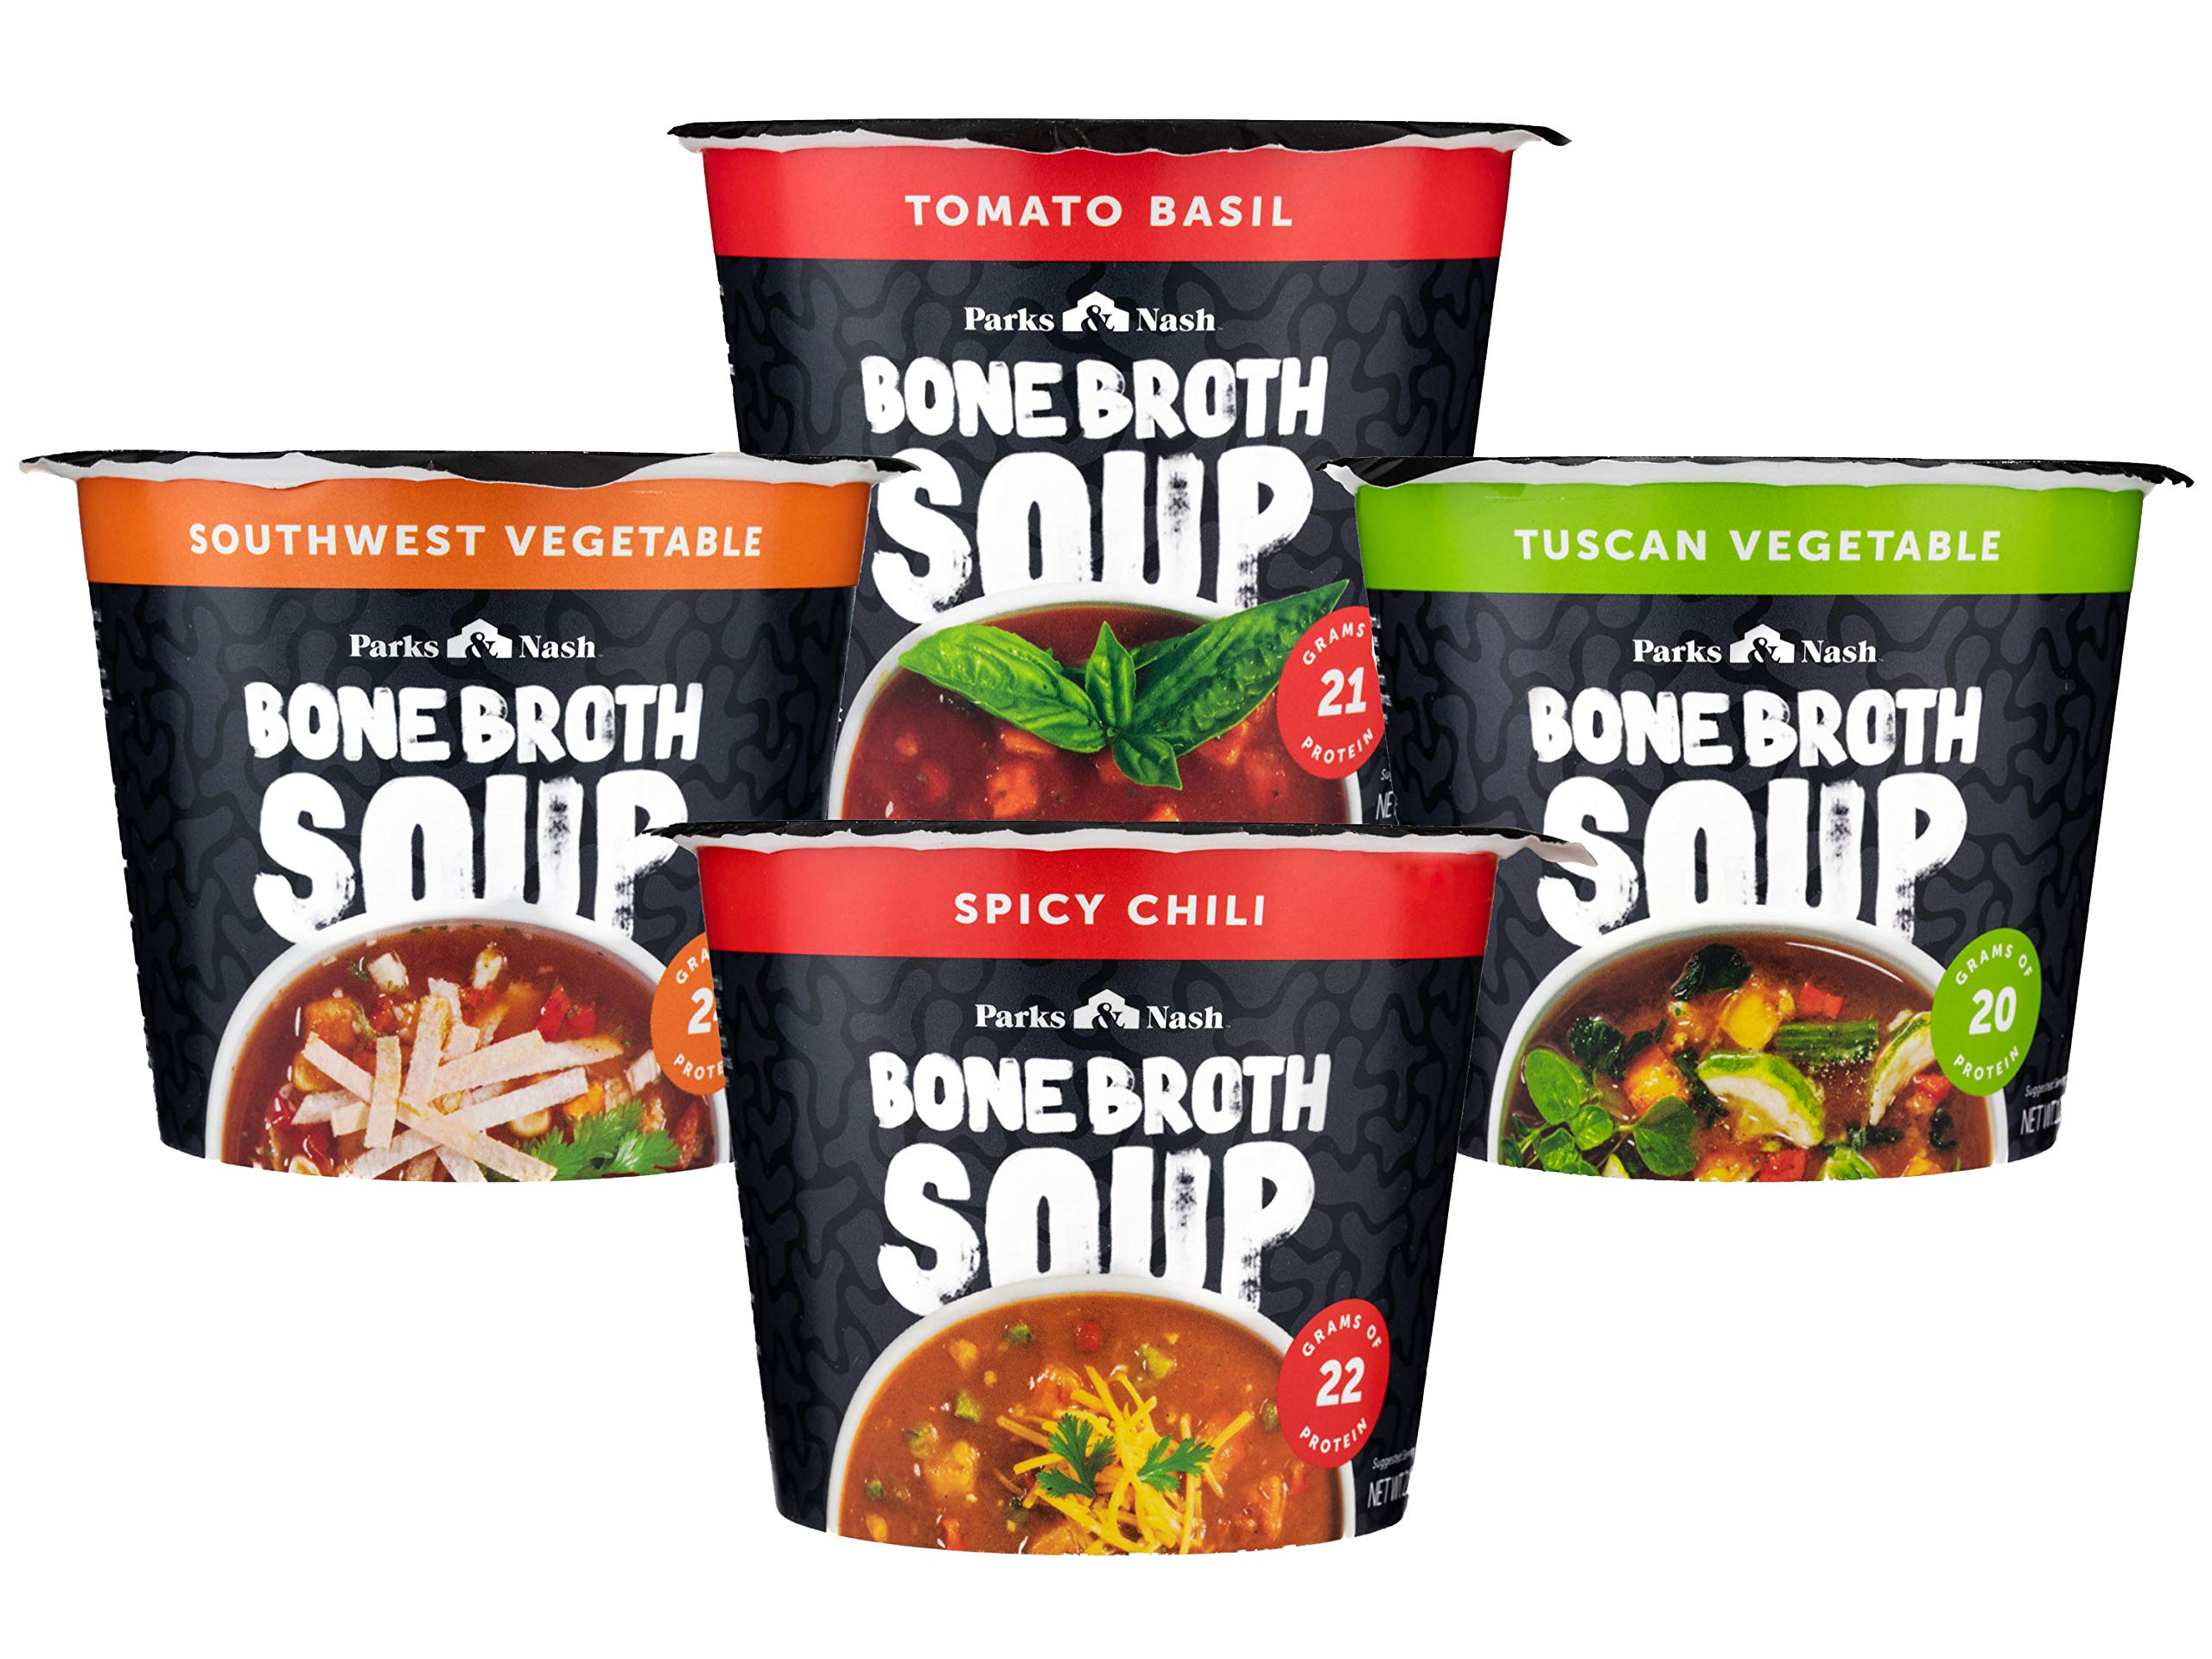 Parks & Nash Bone Broth Soup Variety Pack, 1 Spicy Chili, 1 Southwest Vegetable, 1 Tomato Basil, 1 Tuscan Vegetable, 1 CT